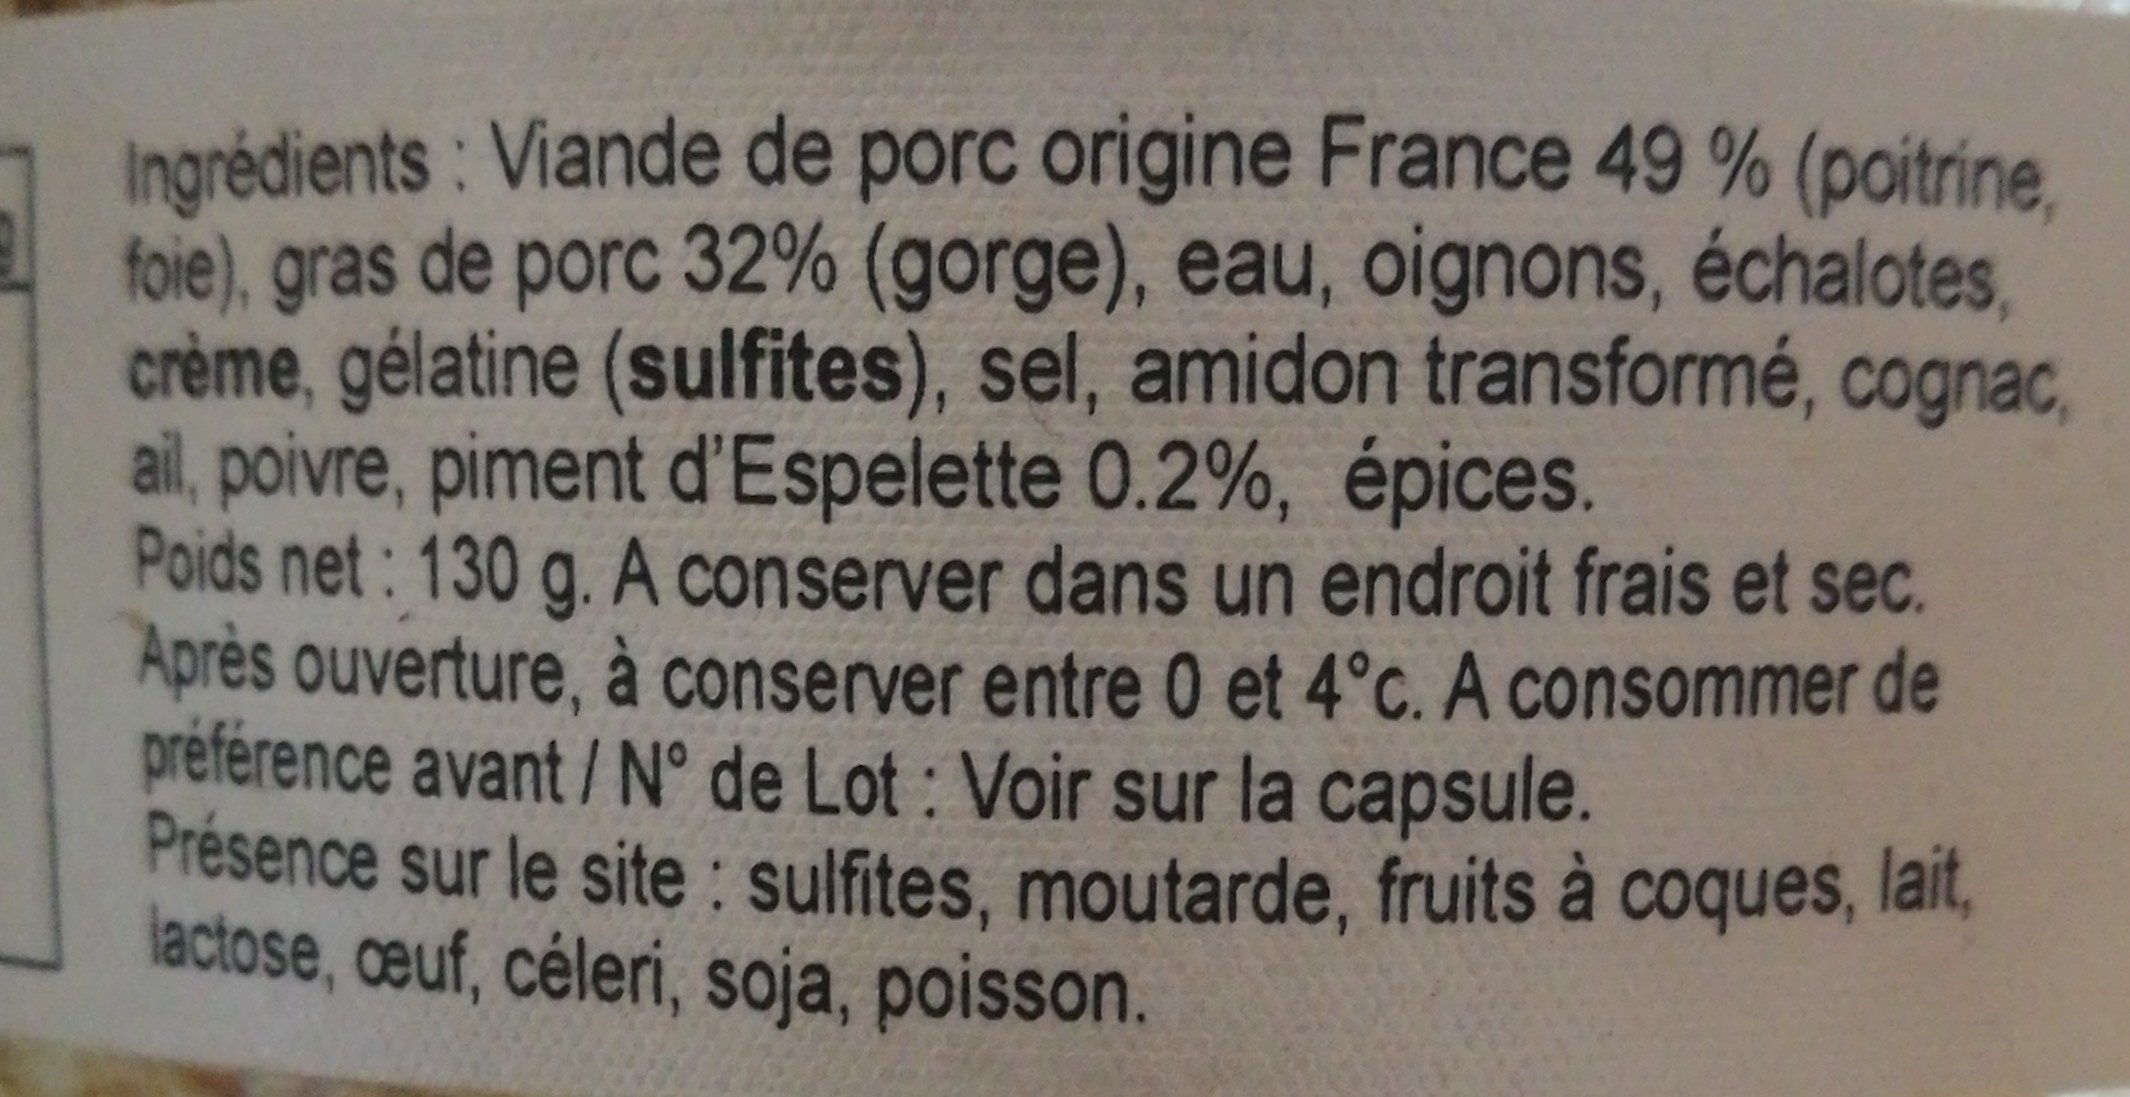 26 - Le pâté au piment d''Espelette - Ingredients